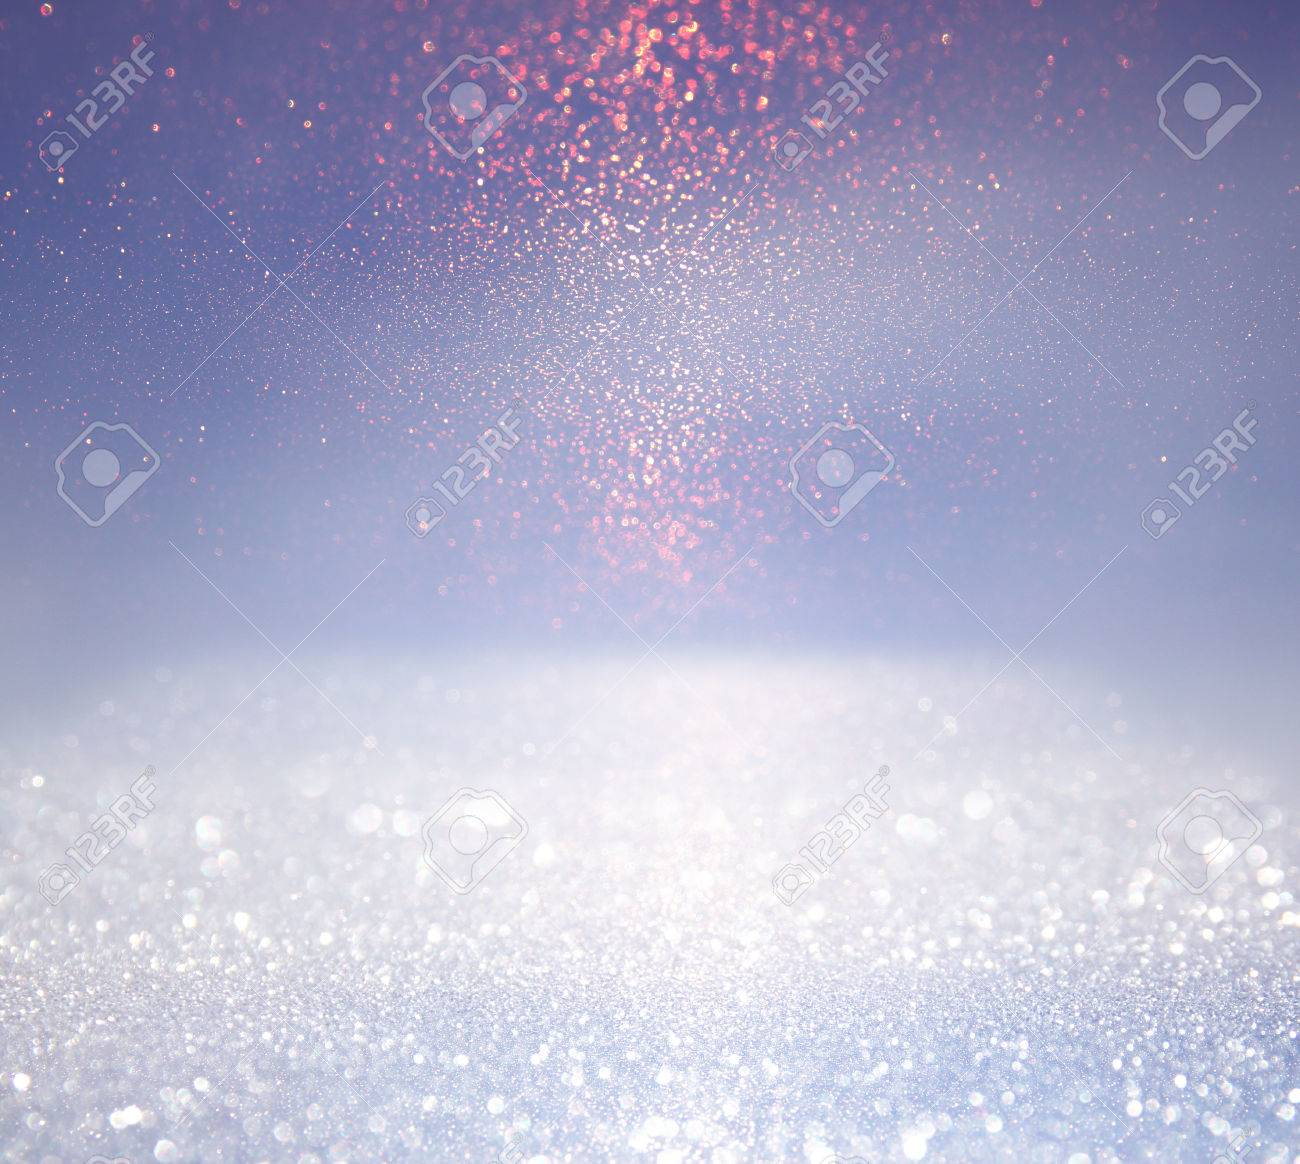 glitter vintage lights background. silver, blue and white. defocused. Stock Photo - 53664095